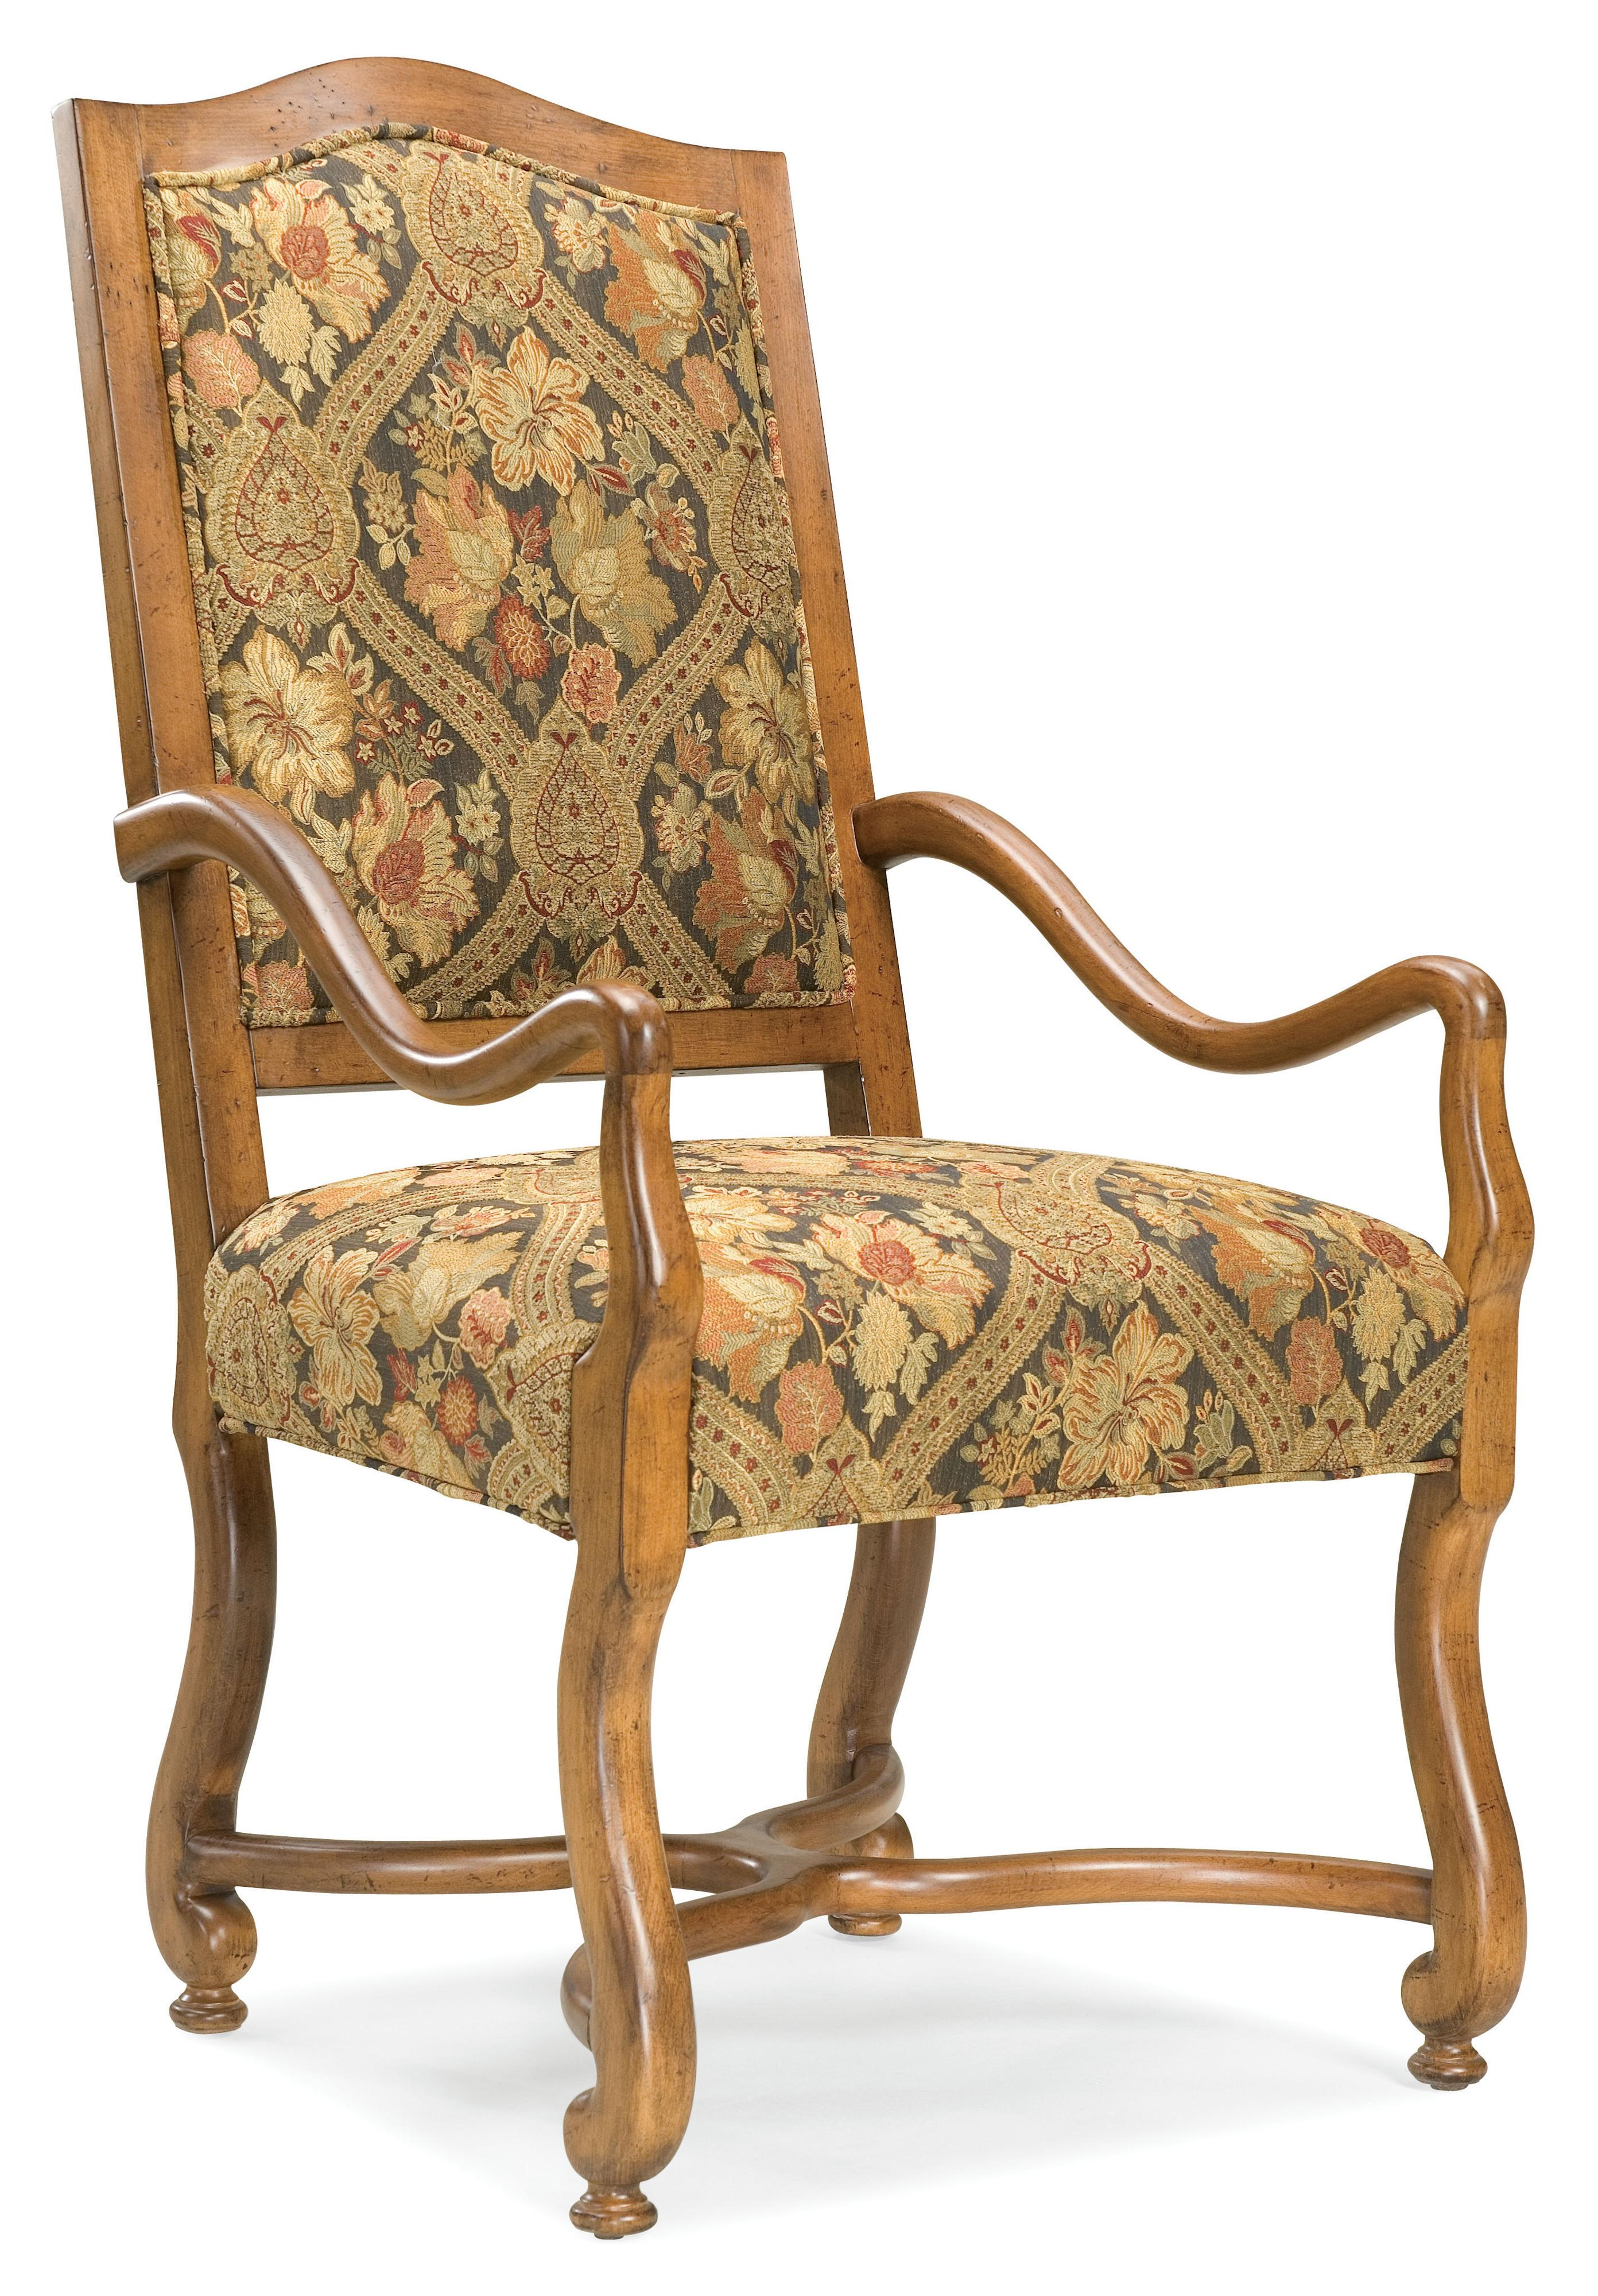 Fairfield Chairs Exposed Wood Arm Chair - Item Number: 5484-04